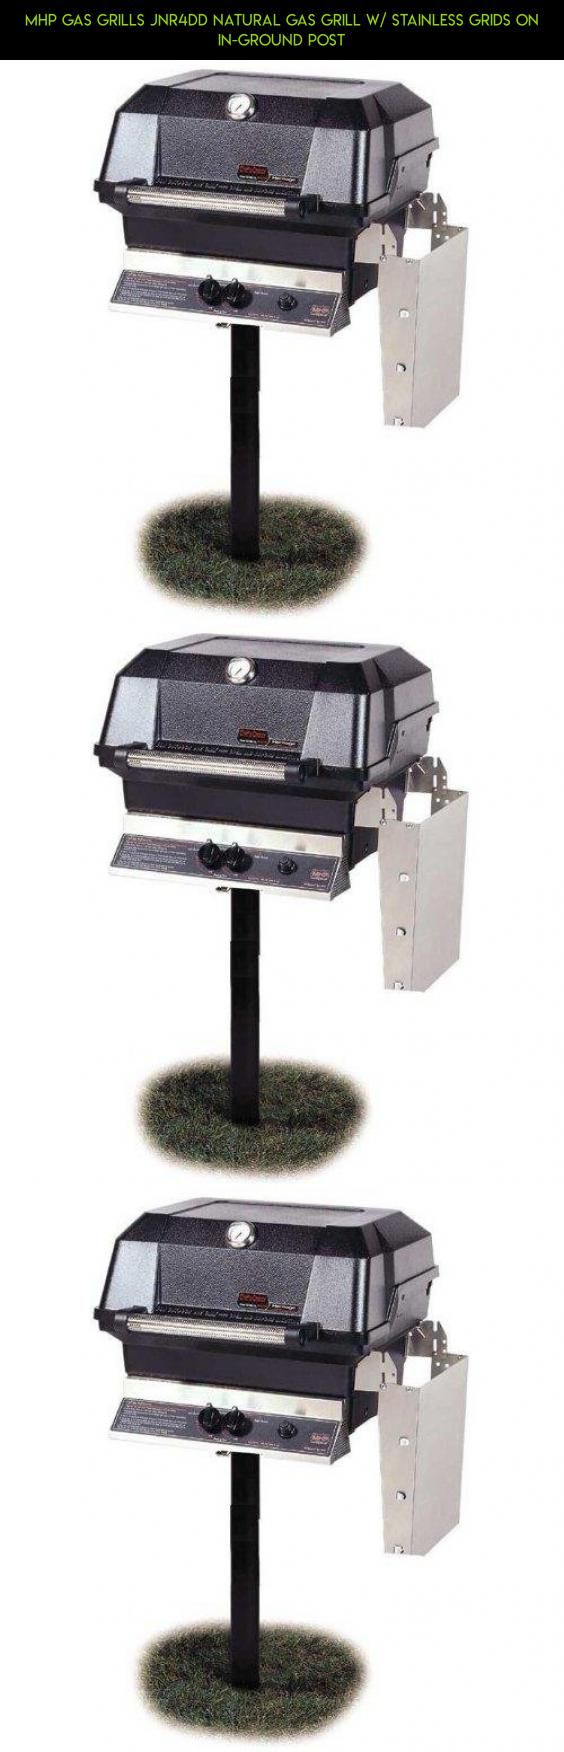 Mhp Gas Grills Jnr4dd Natural Gas Grill W/ Stainless Grids On In-ground Post #plans #gas #tech #technology #mhp #parts #shopping #gadgets #natural #grills #racing #drone #camera #products #kit #fpv